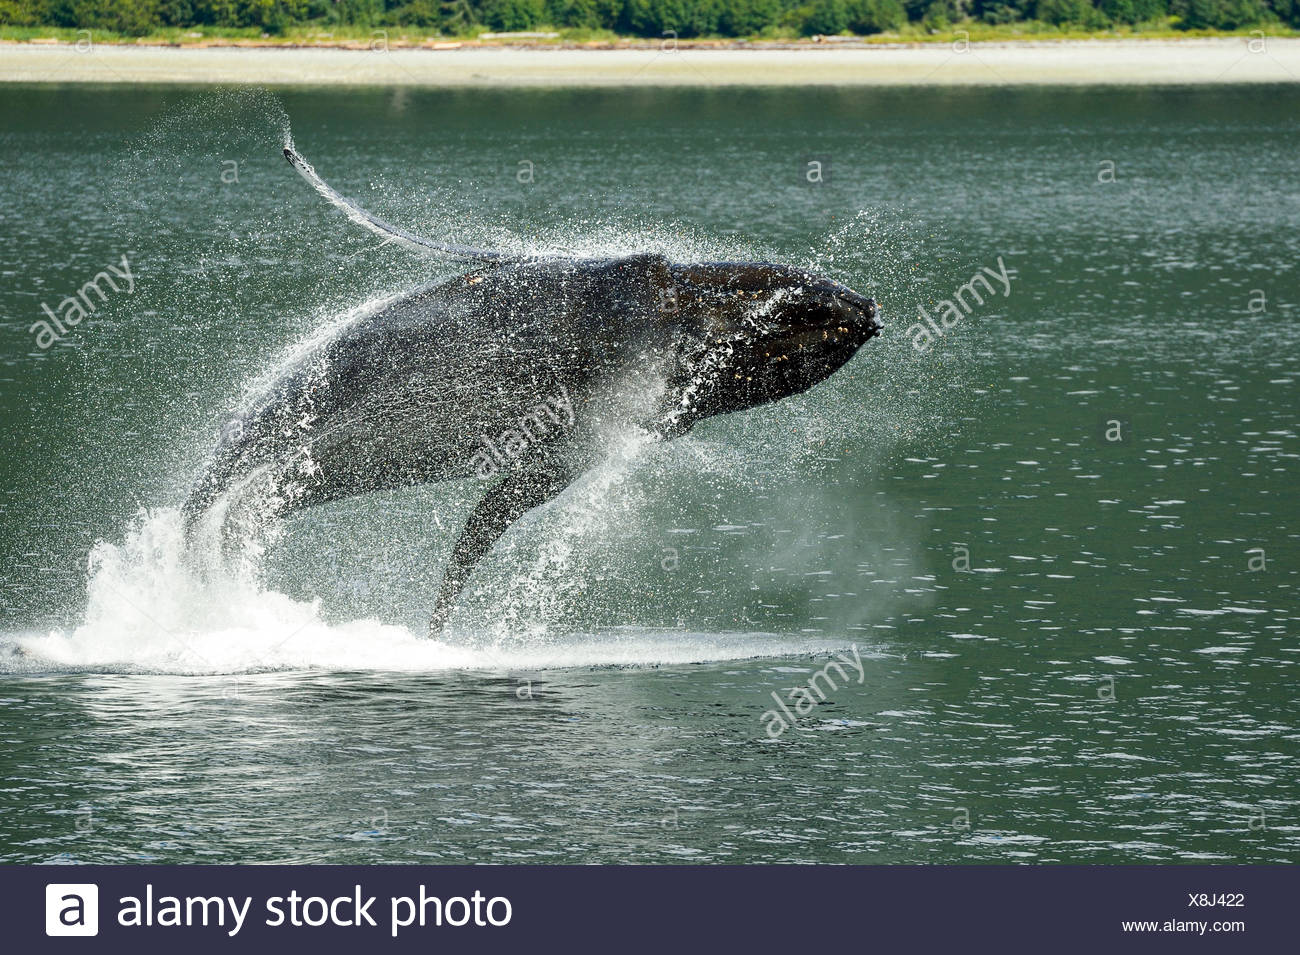 With the gracefulness of an aquatic ballerina, a humpback whale breaches in the waters of Alaska's inside passage. - Stock Image